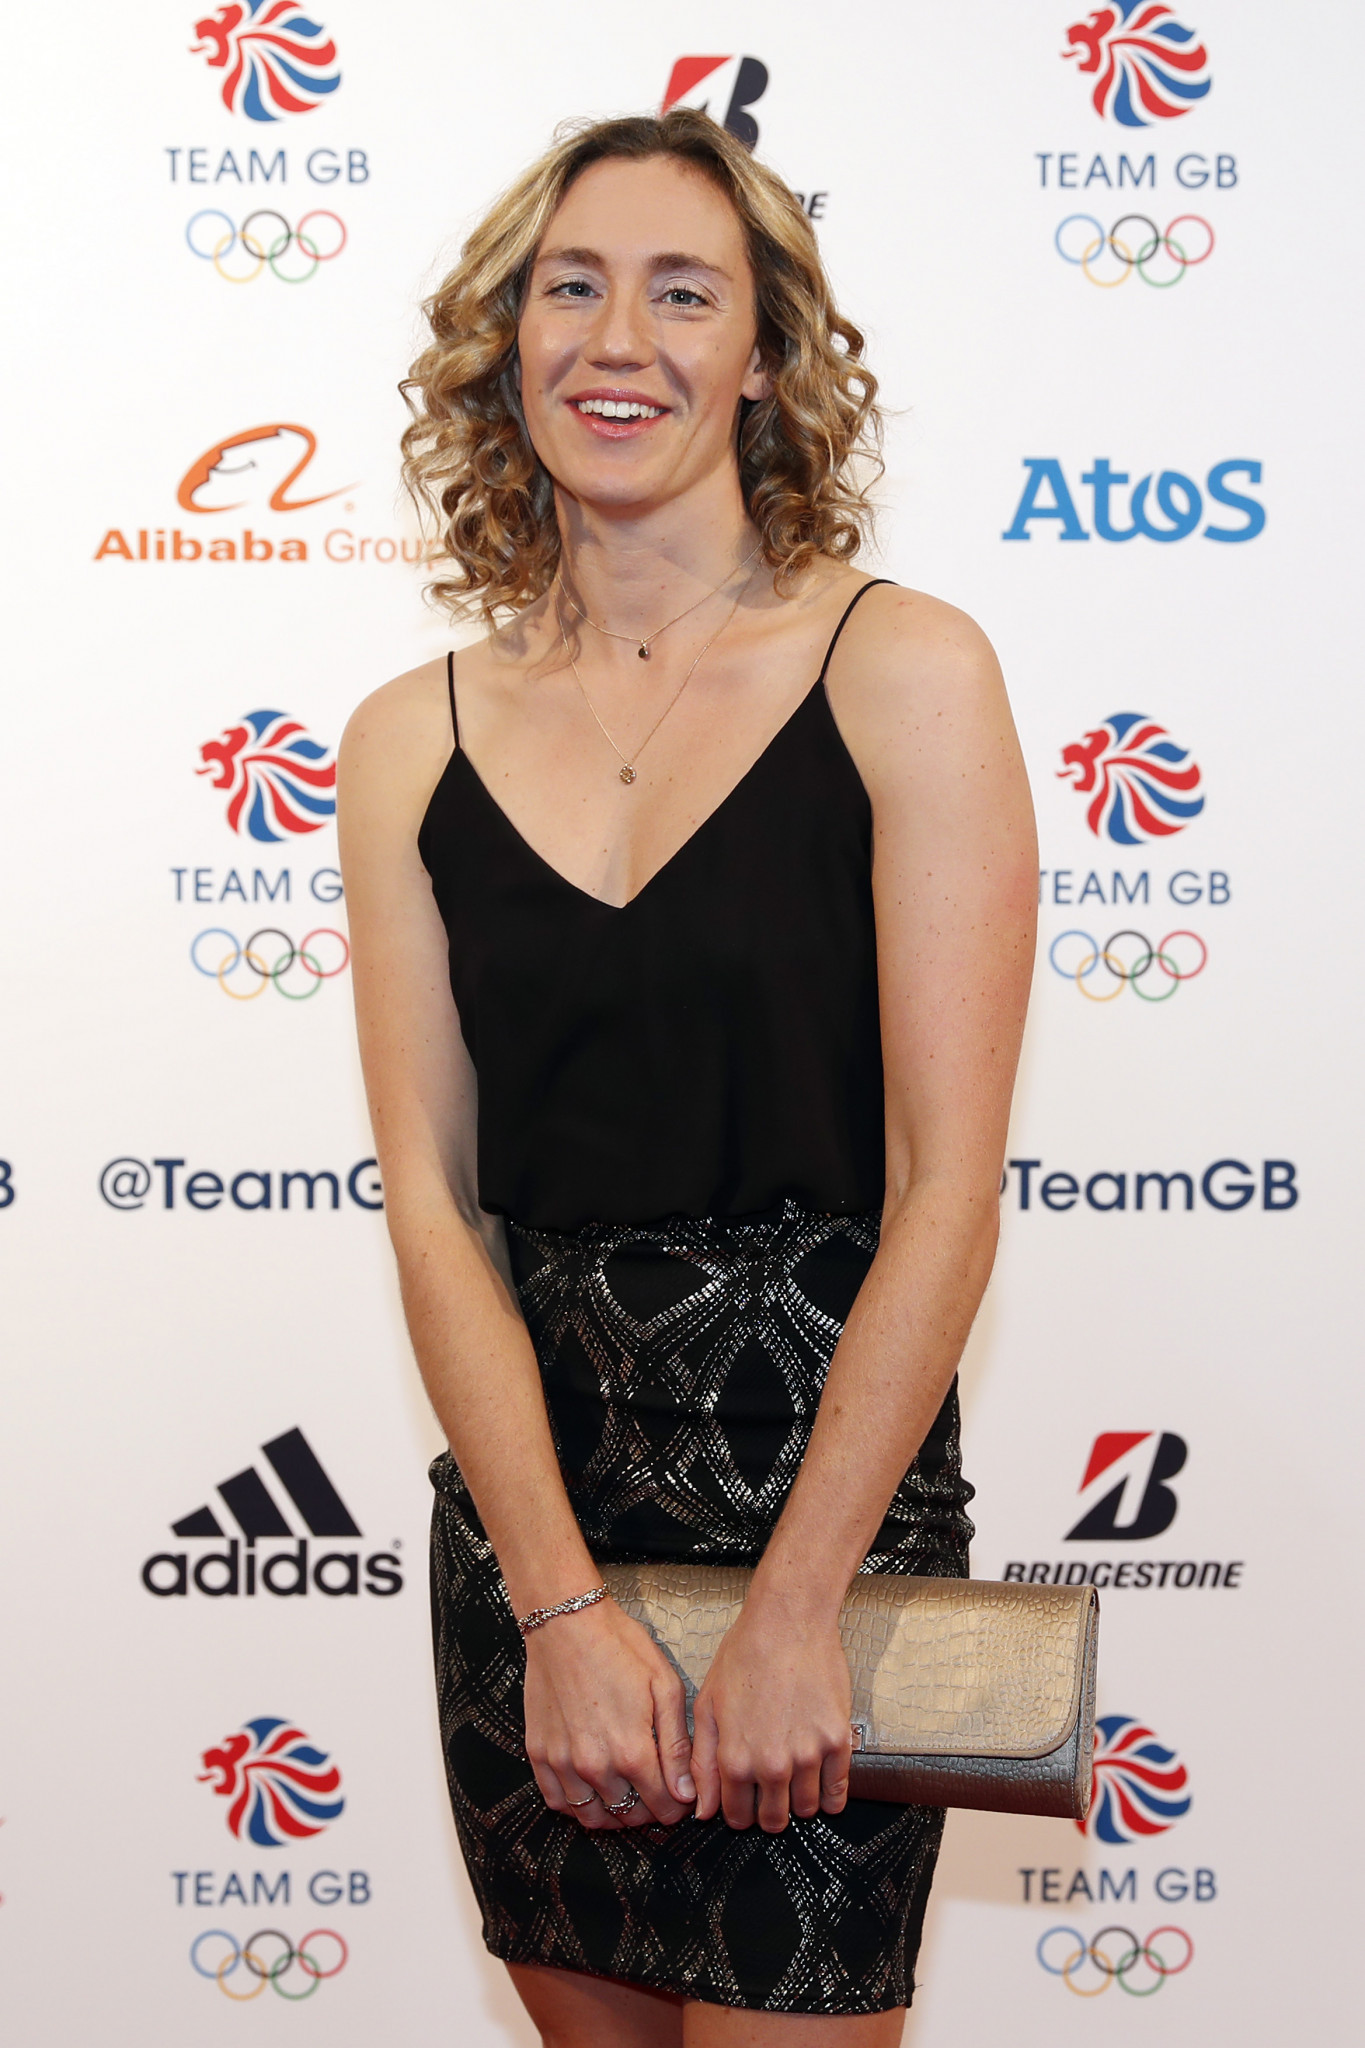 Lizzie Simmonds has been elected as the new chair of the BOA Athletes' Commission ©Getty Images